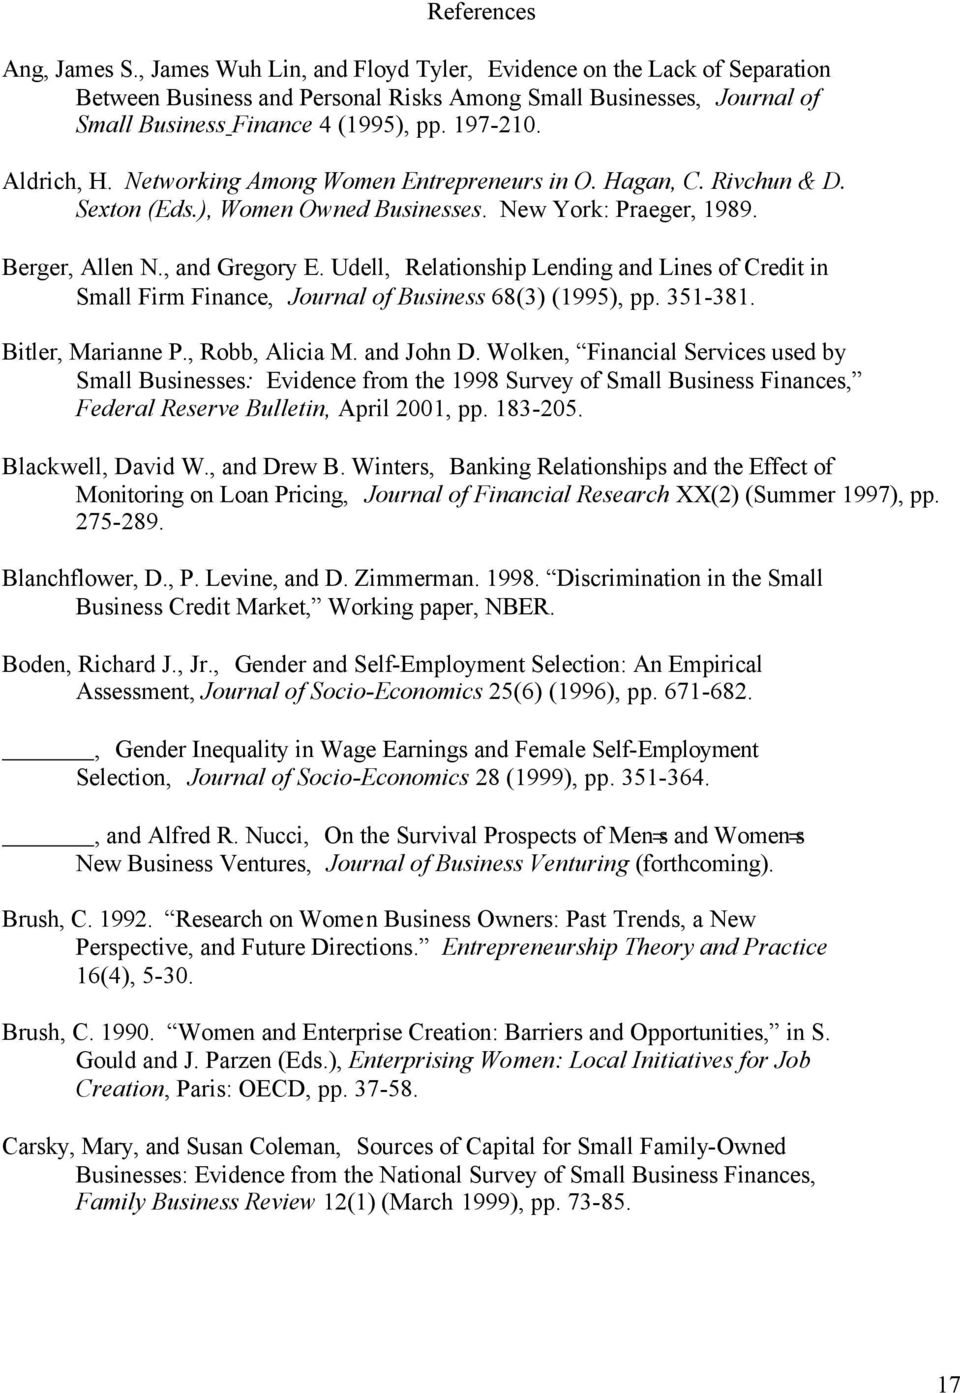 Networking Among Women Entrepreneurs in O. Hagan, C. Rivchun & D. Sexton (Eds.), Women Owned Businesses. New York: Praeger, 1989. Berger, Allen N., and Gregory E.